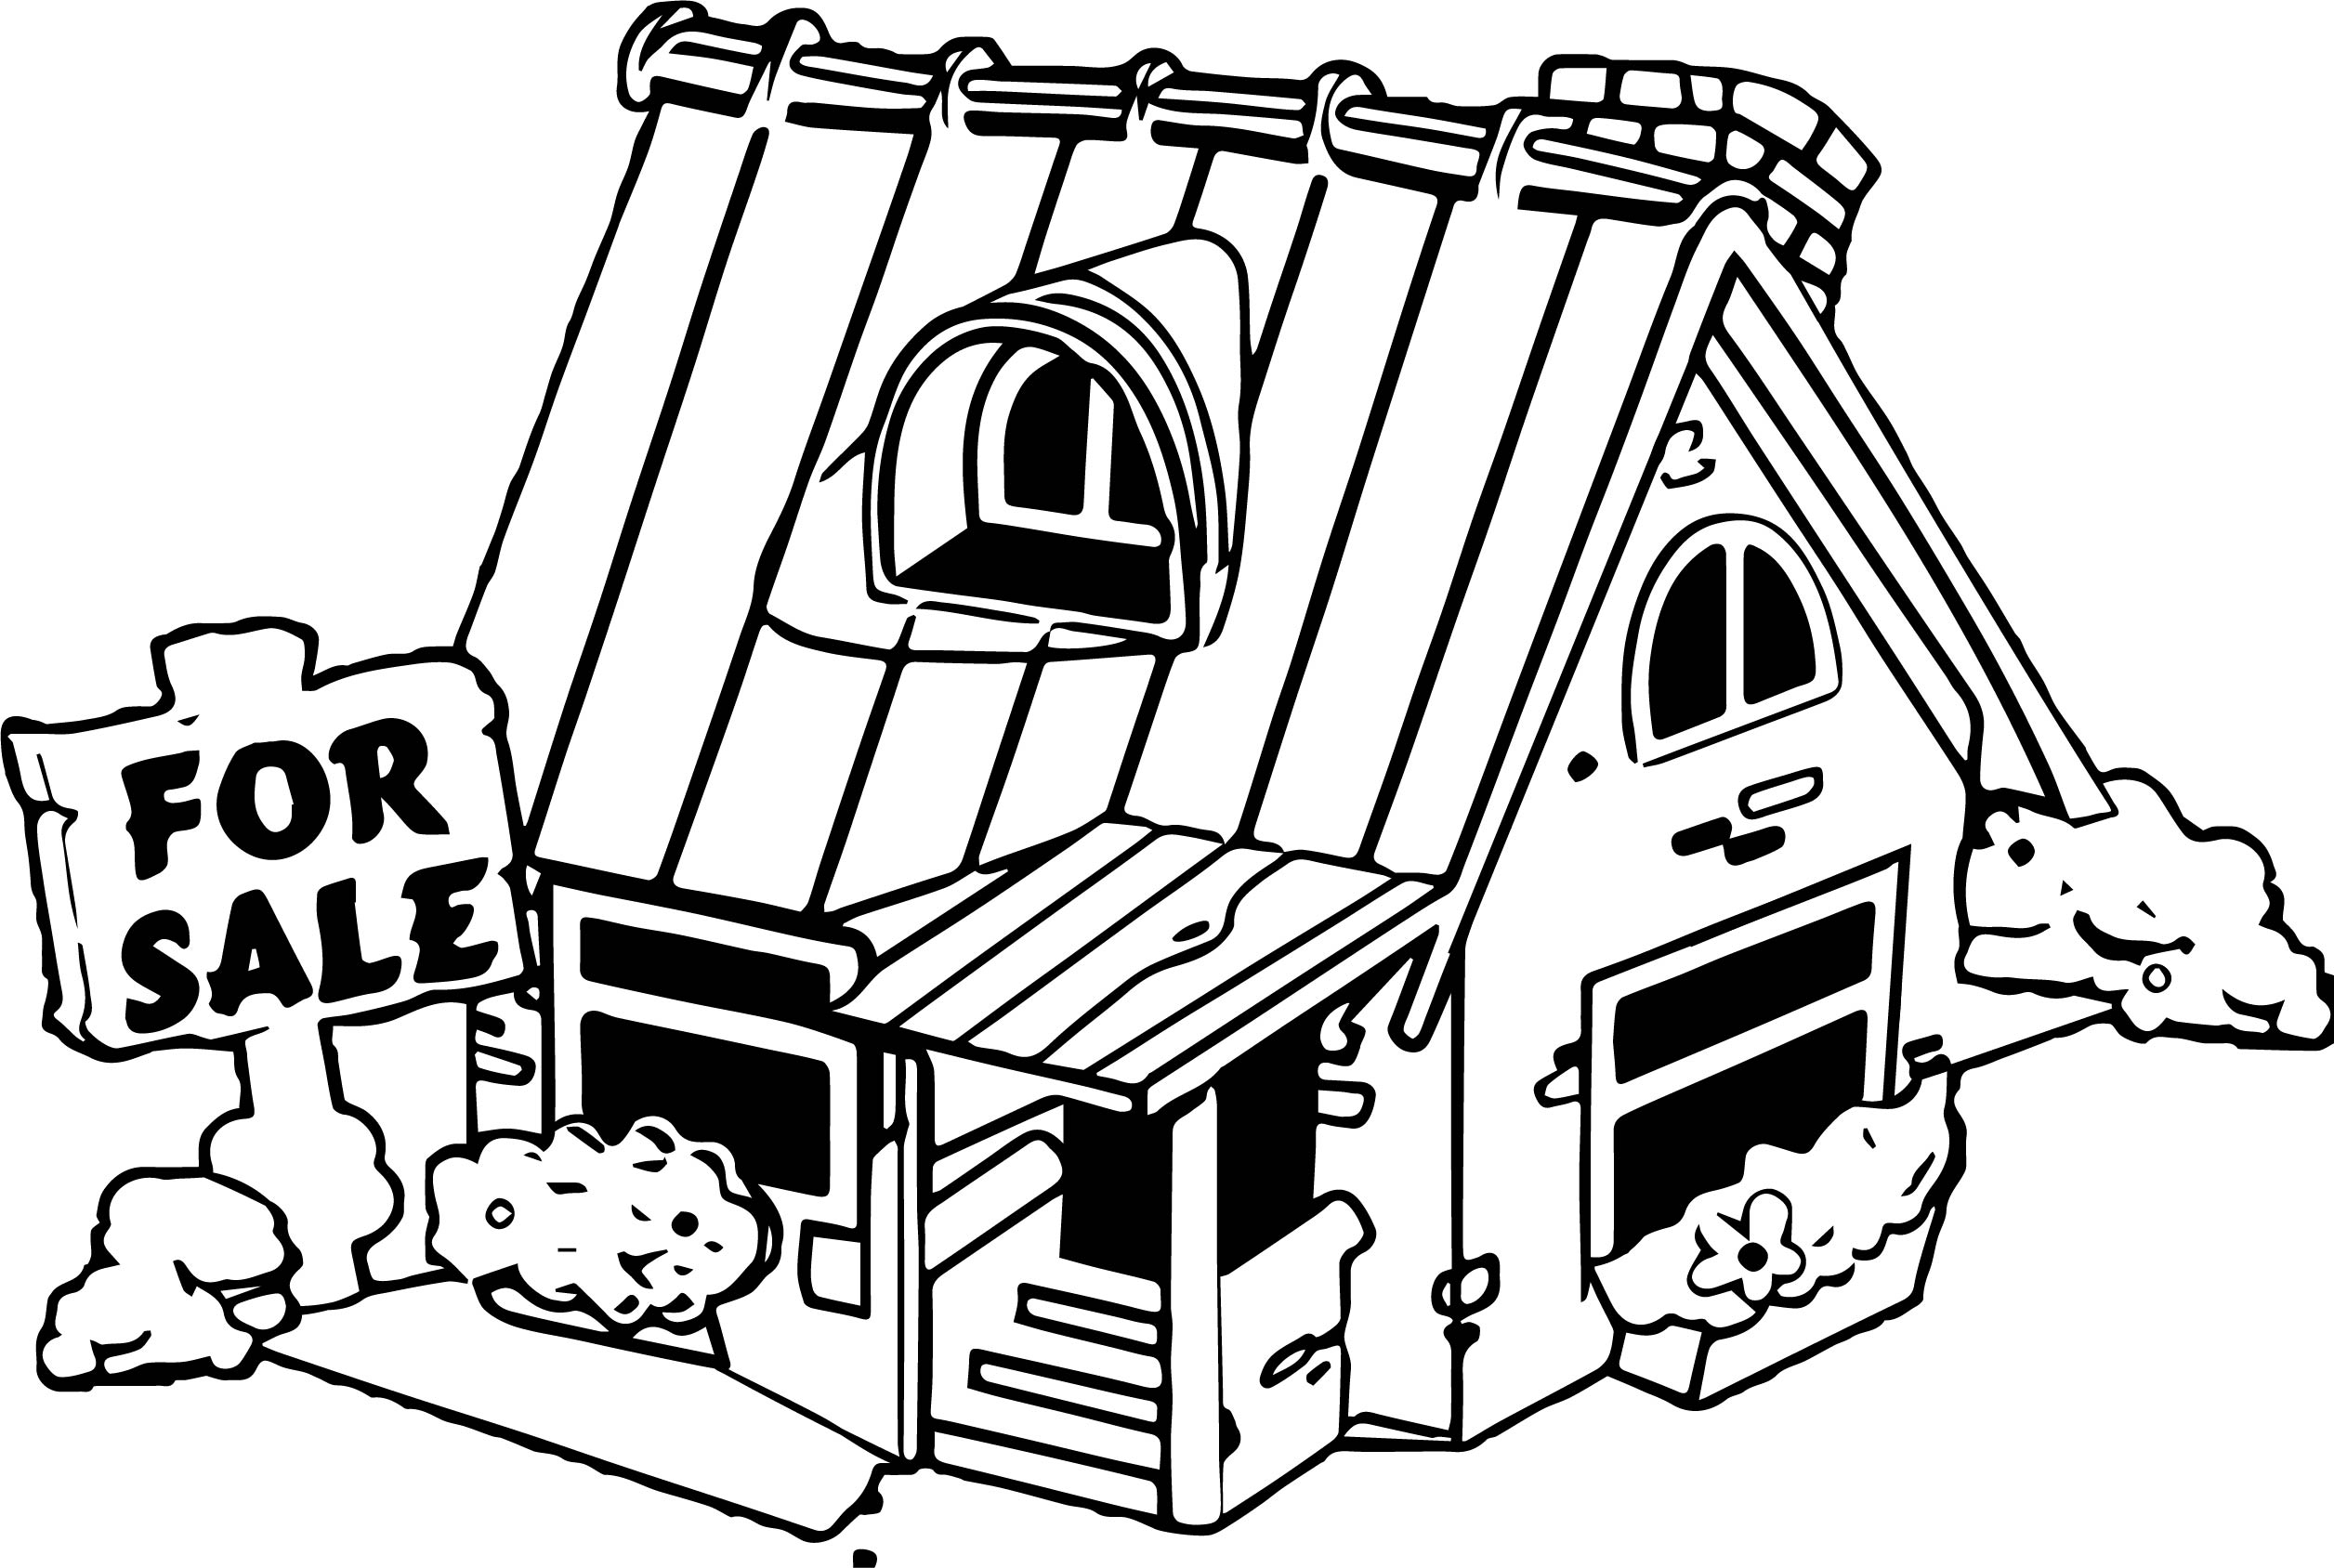 House for sale black window coloring page